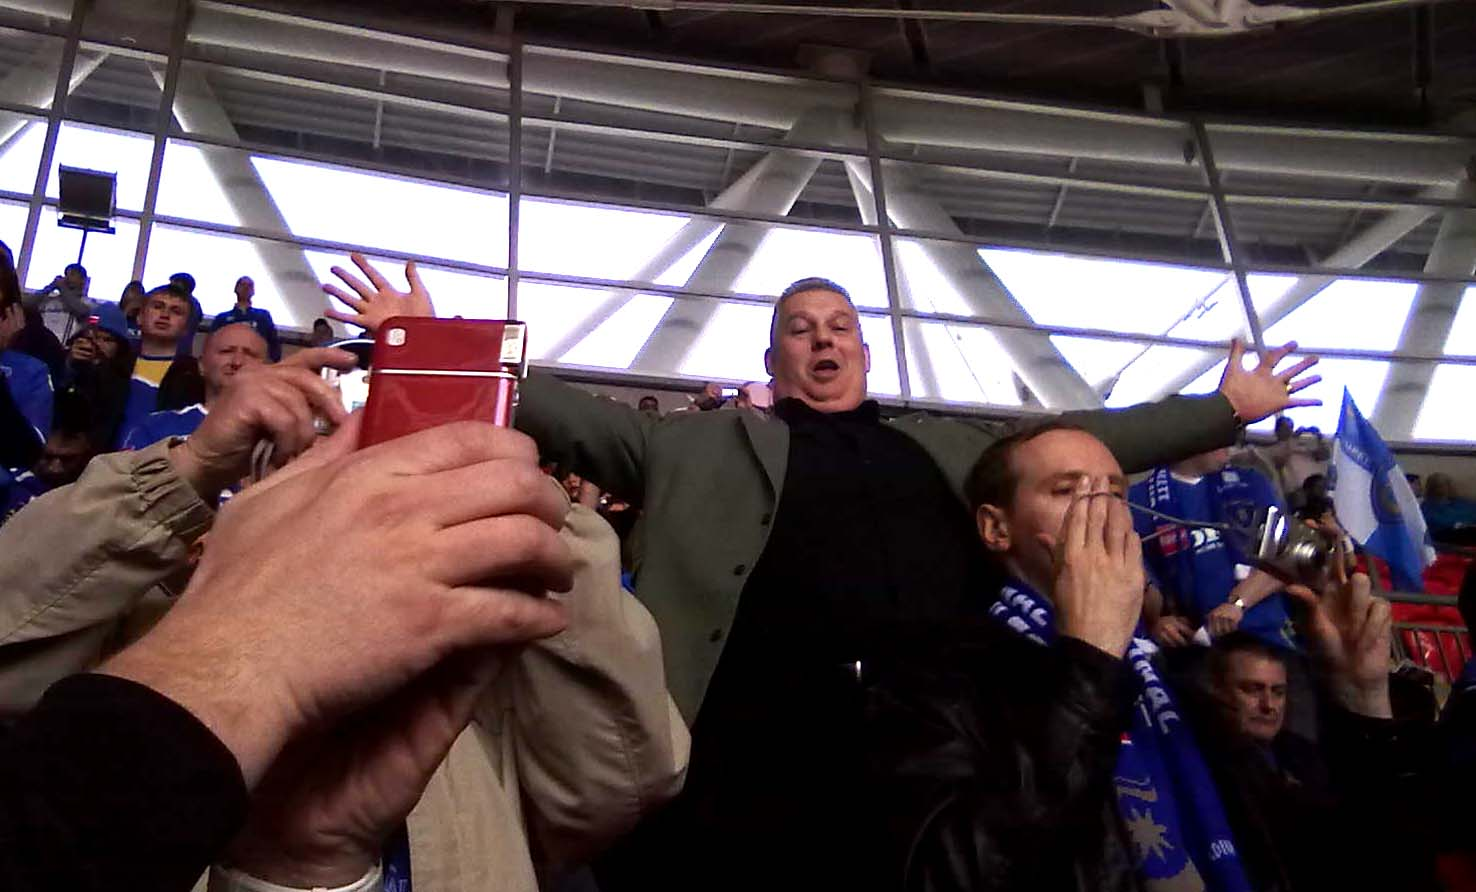 Ian Noble, The Pompey fan, Wembley Stadium 2010, F.A. Cup Semi Final.